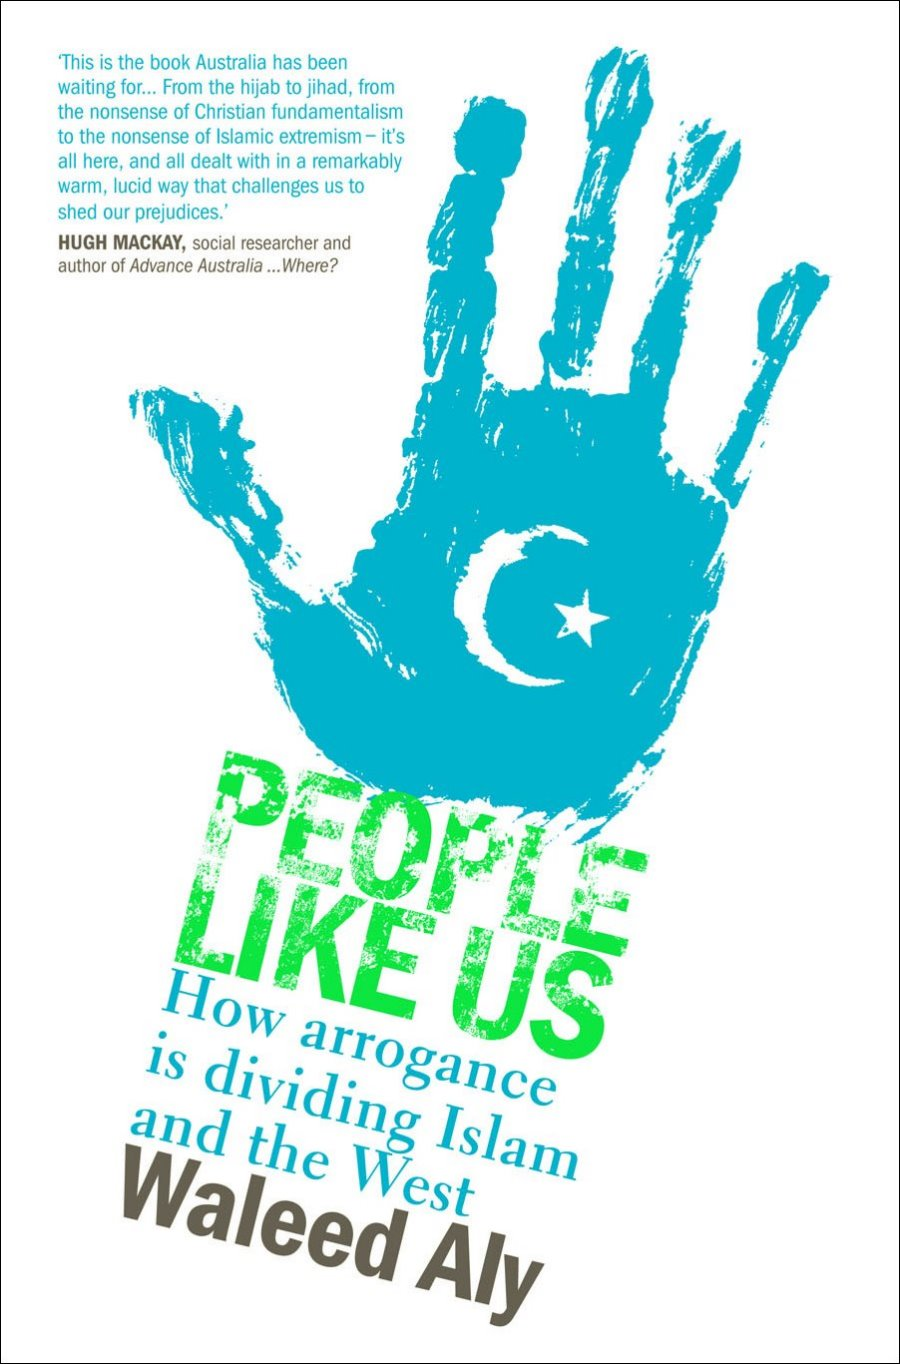 People Like Us - Waleed Aly